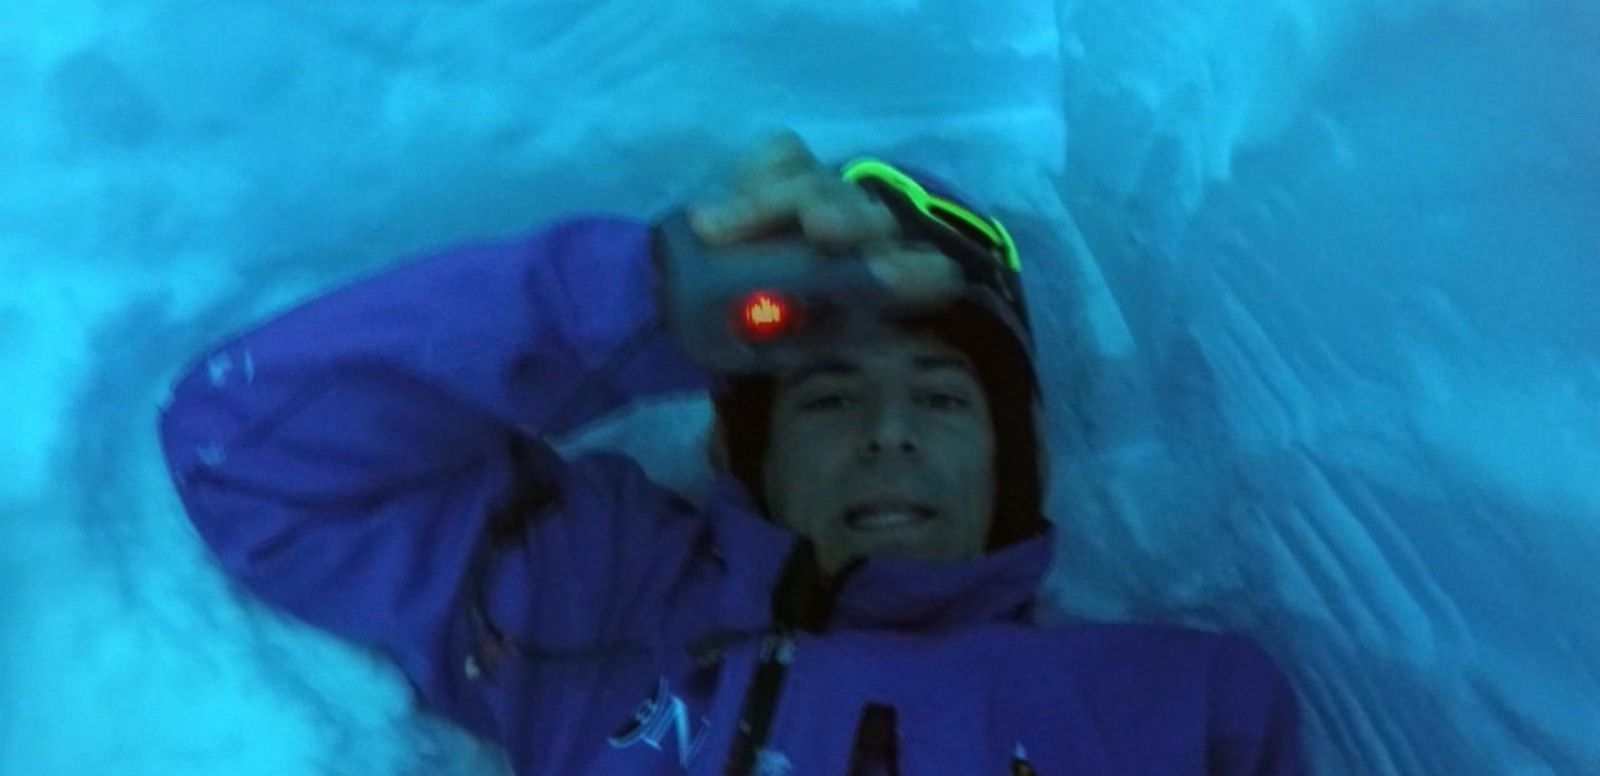 VIDEO: How You Can Survive a Potentially Deadly Avalanche